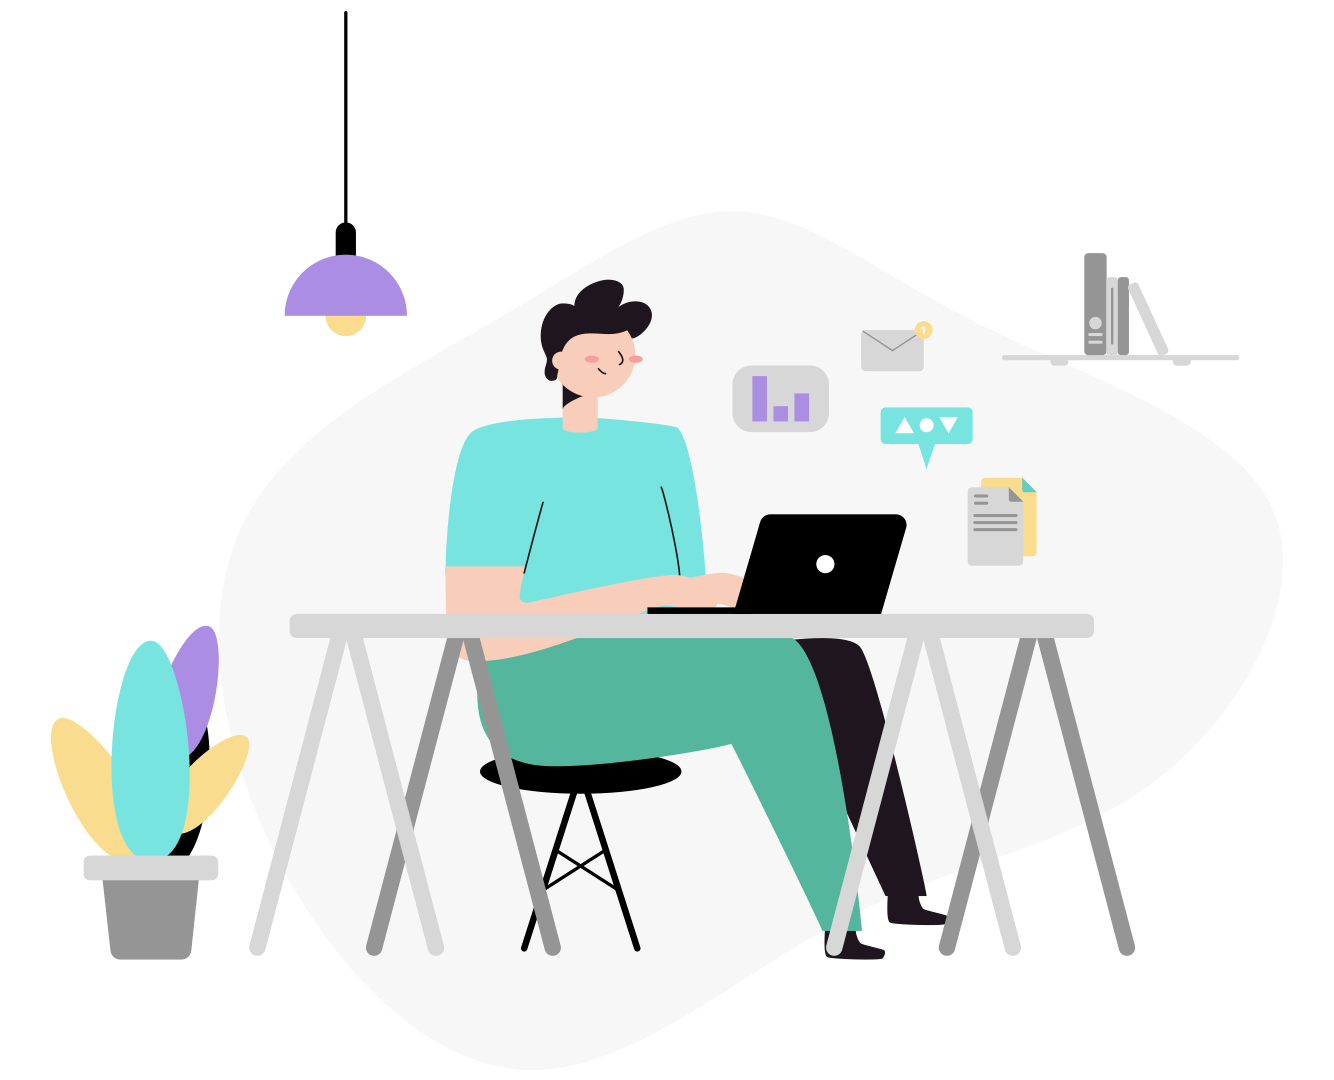 illustration of a man working at a desk